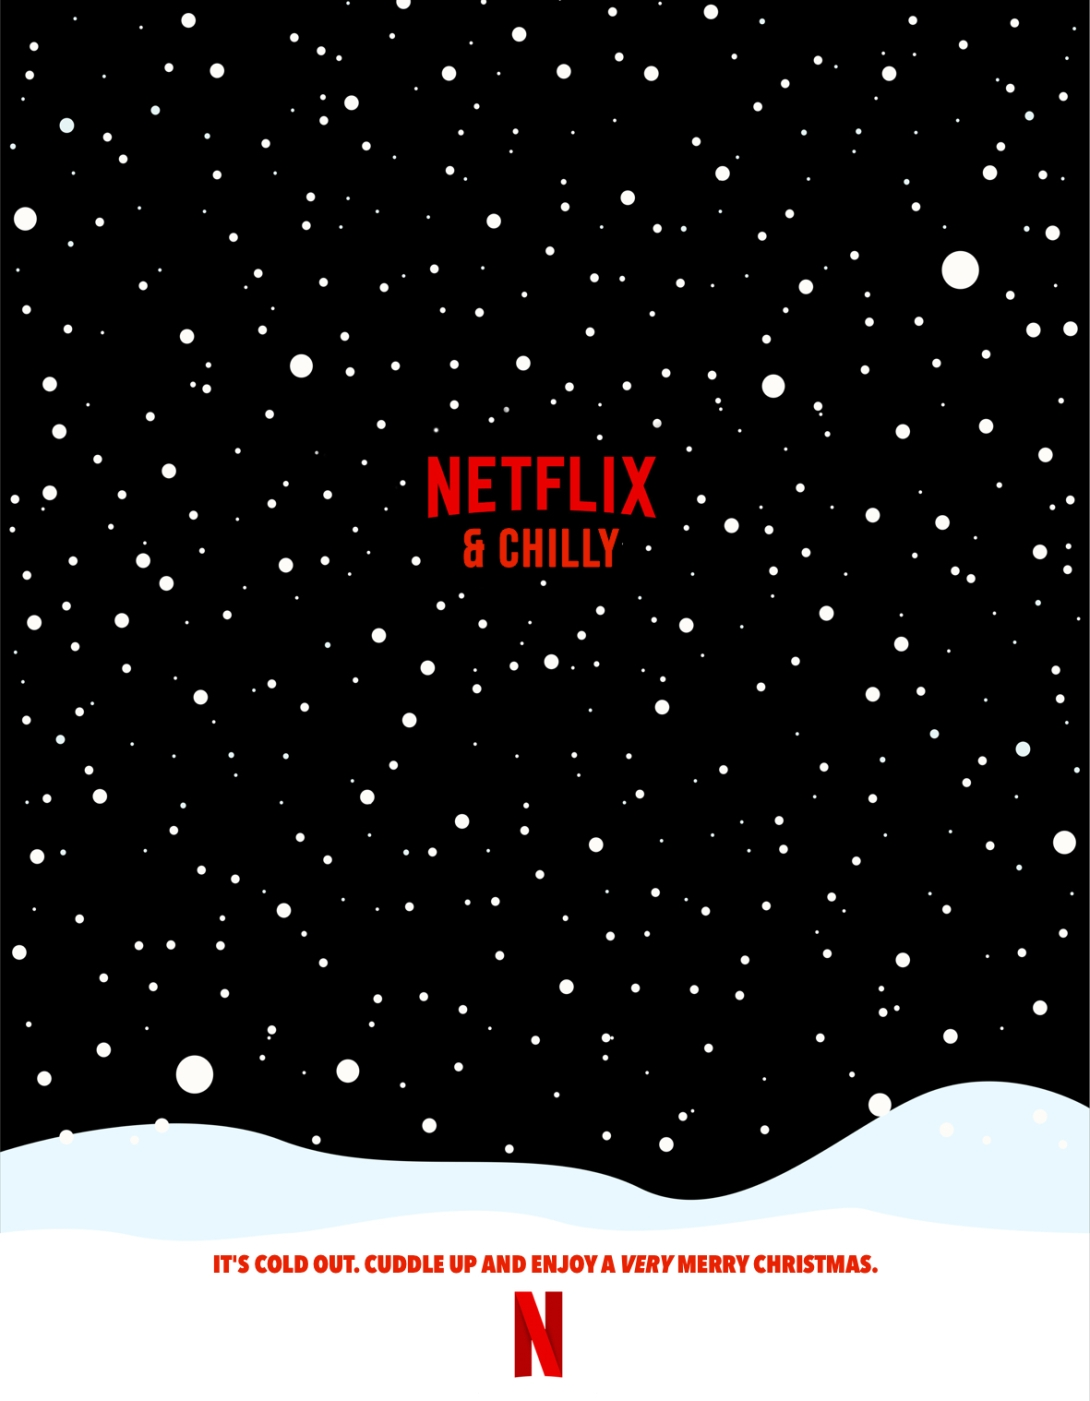 Quick advertising idea for Christmas movies on Netflix - Netflix & Chilly